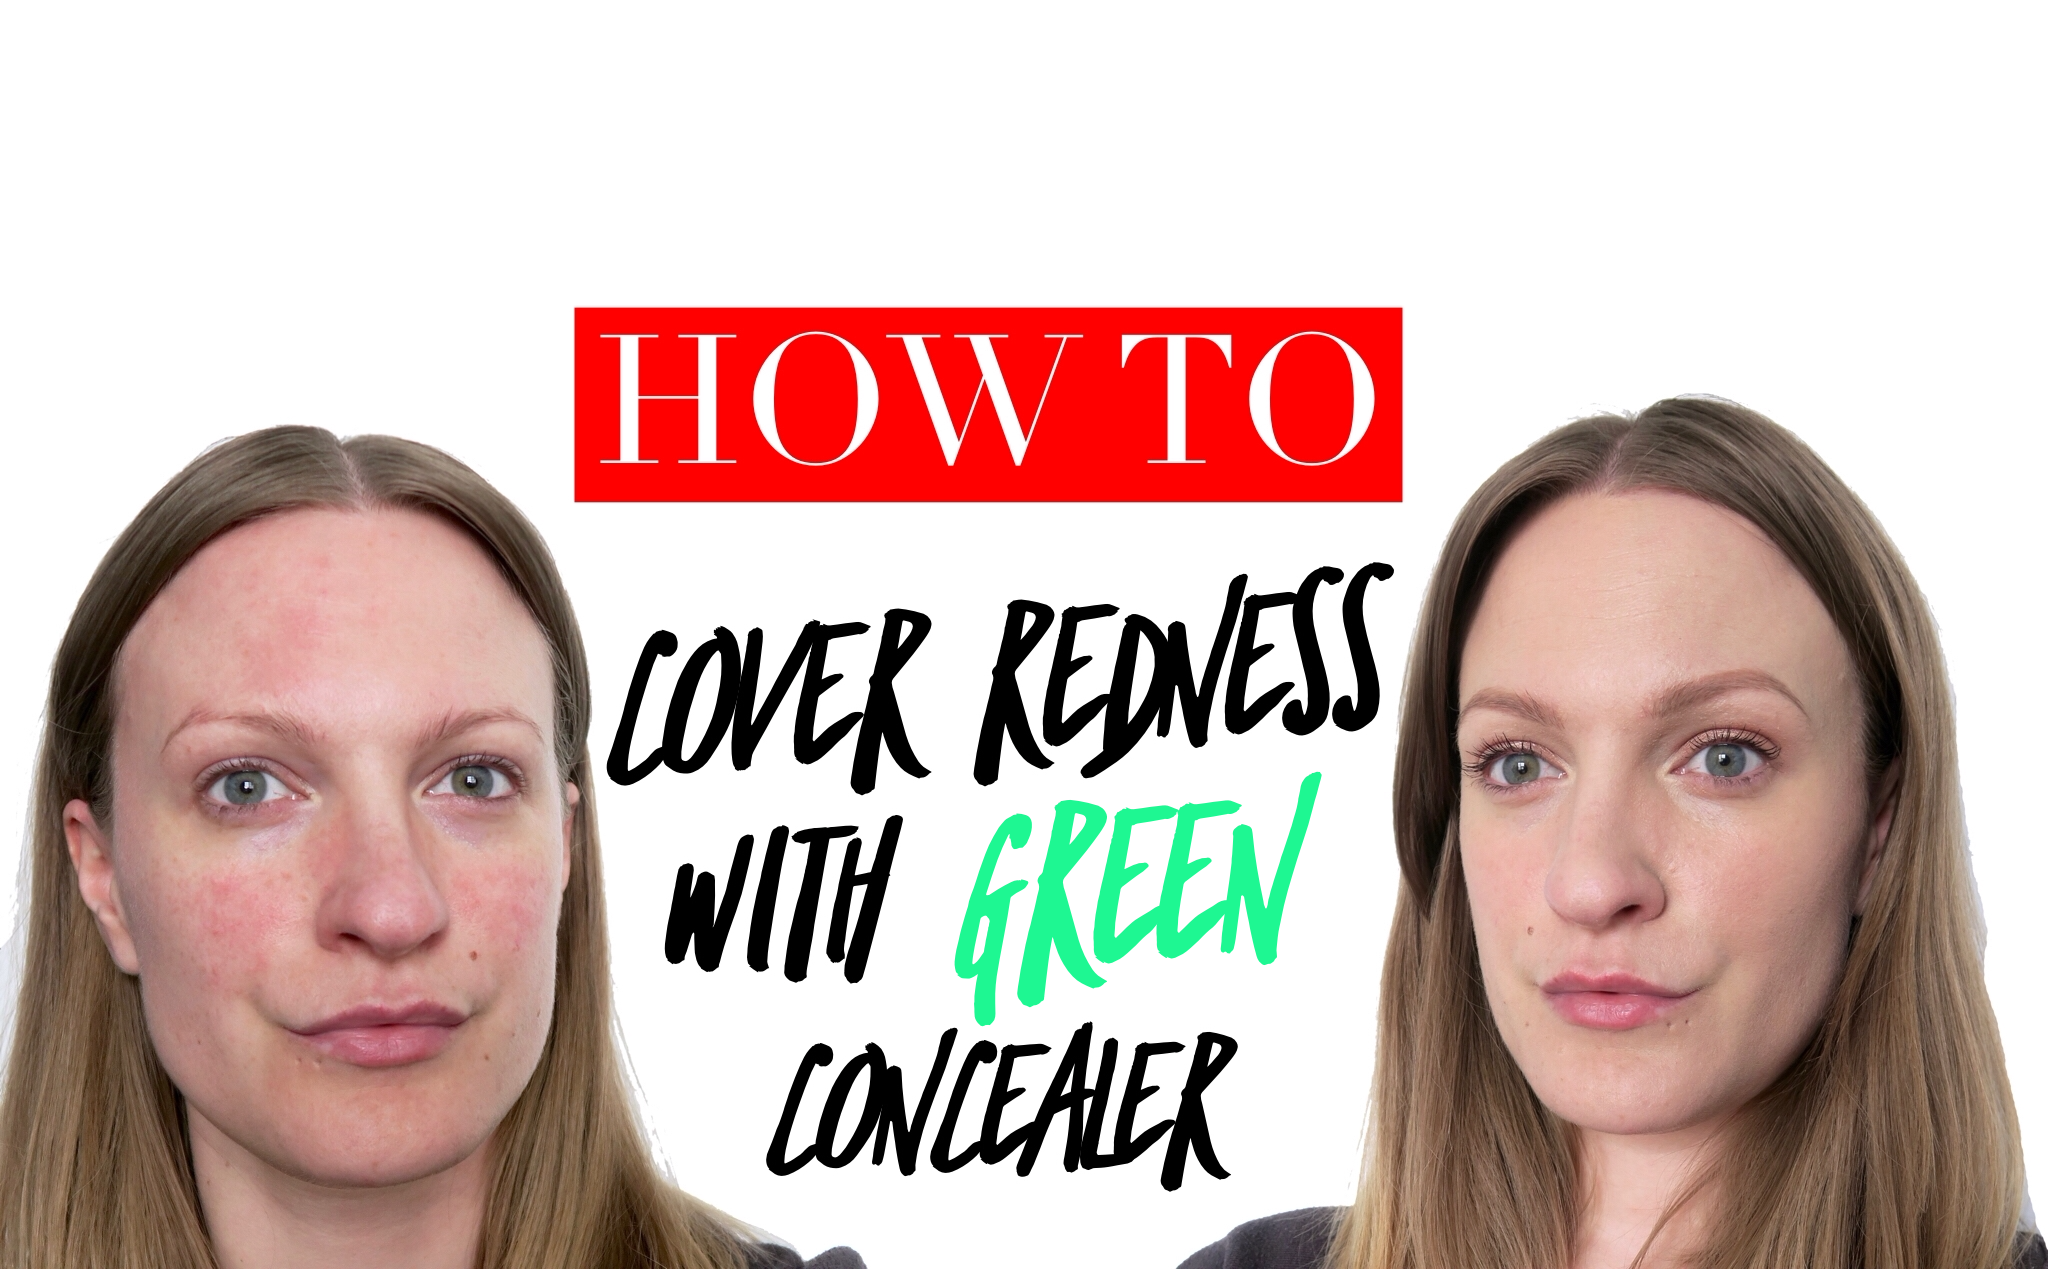 How To Cover Redness With Green Concealer Rosacea, Green